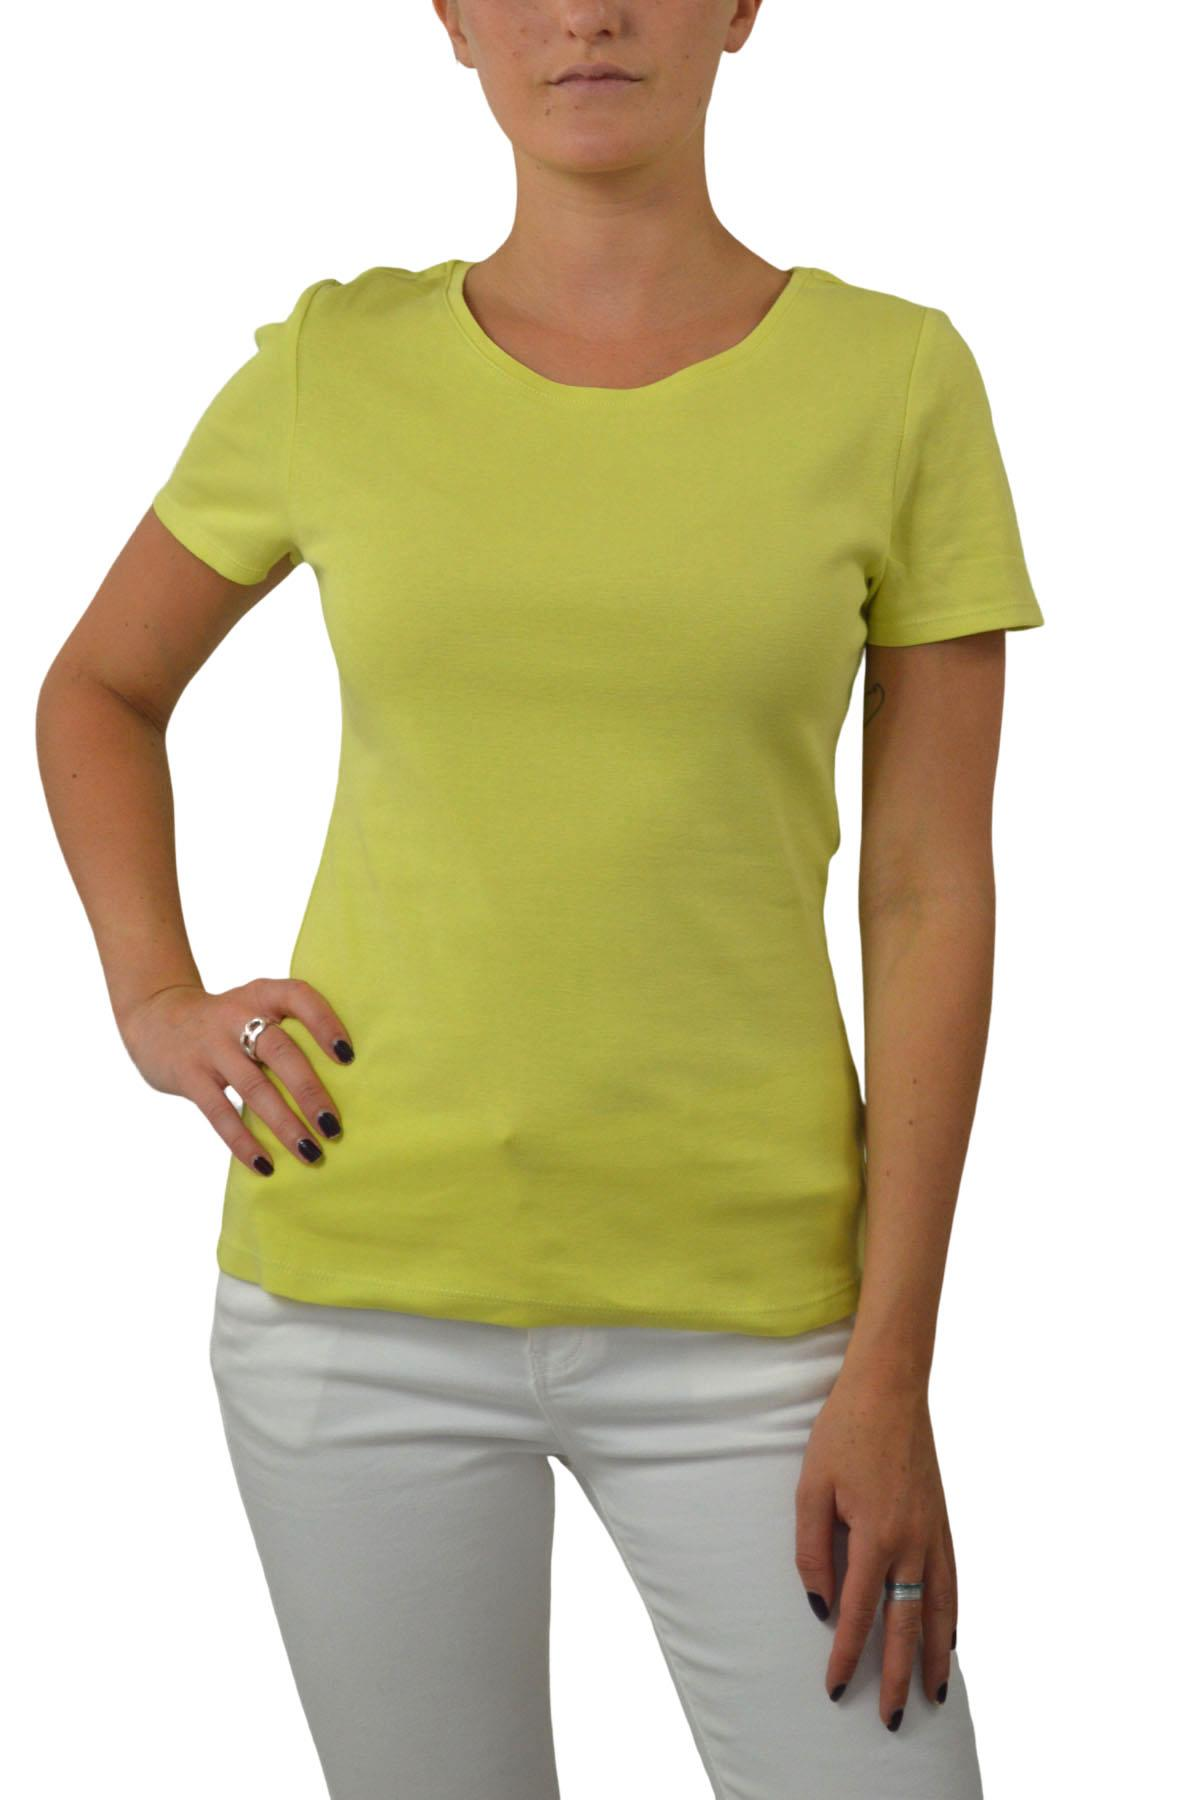 M-amp-S-Ladies-Short-Sleeve-Cotton-T-Shirt-Slim-Fit-Curved-Hem-Size-4-to-24 thumbnail 12